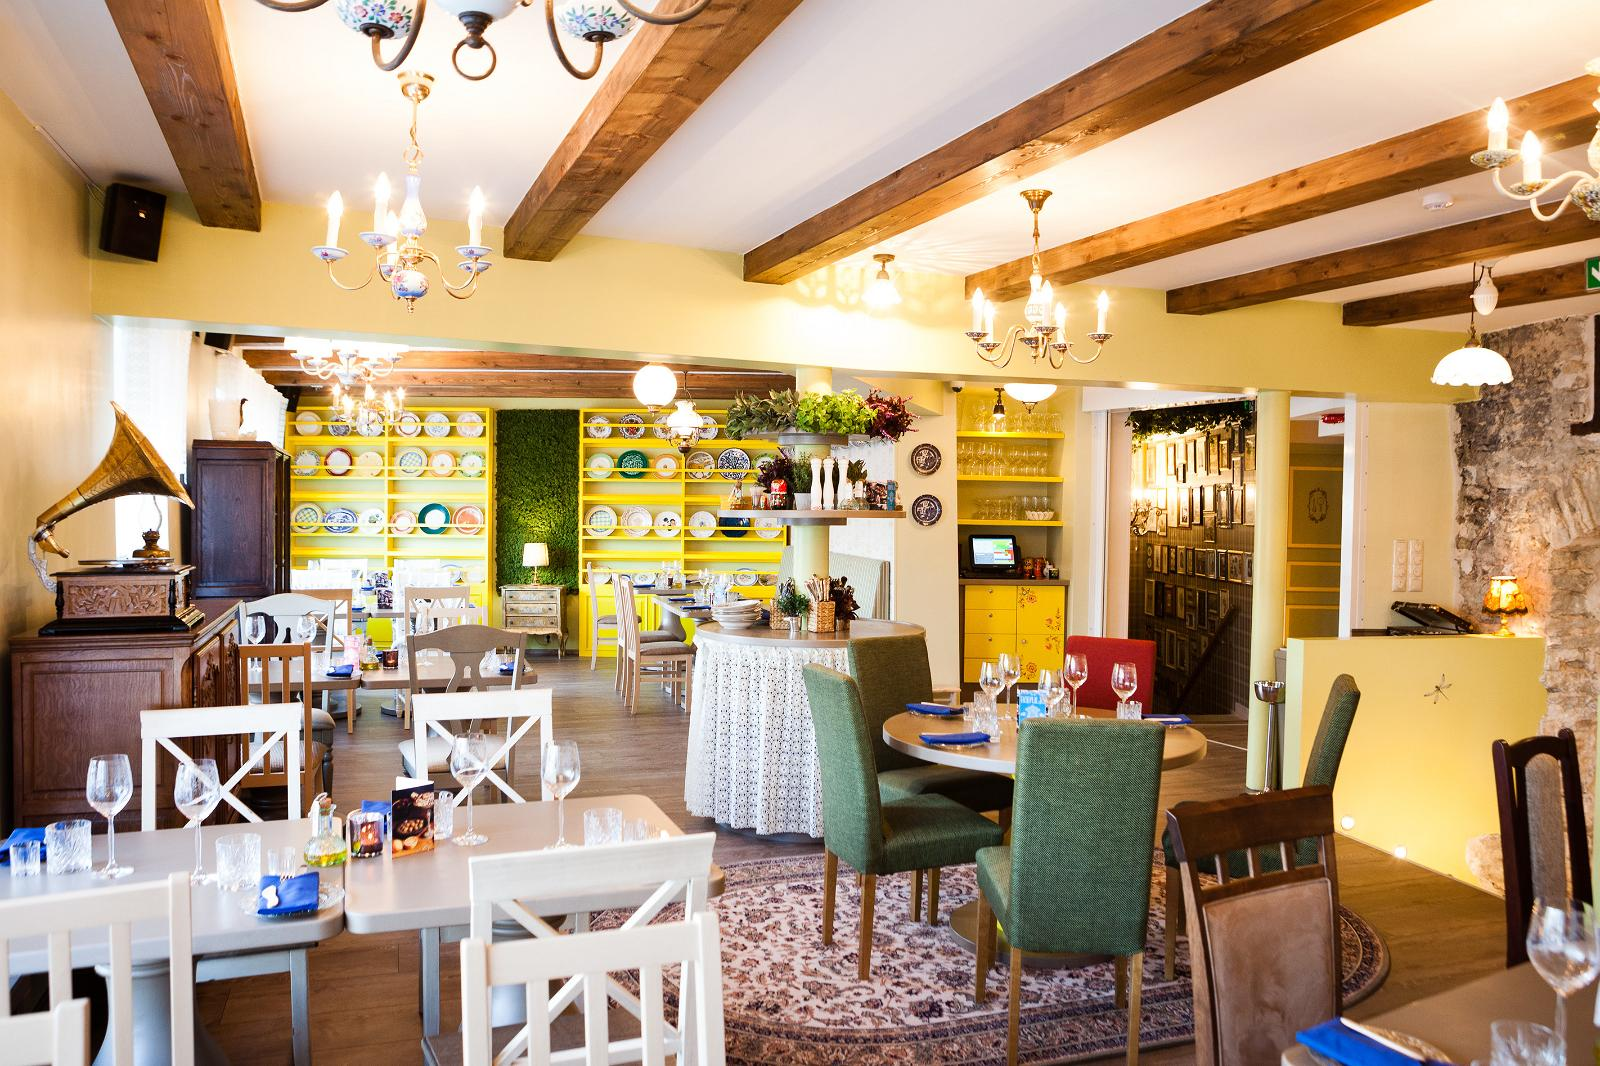 Restaurant the grill house estonia - The grill house restaurant ...